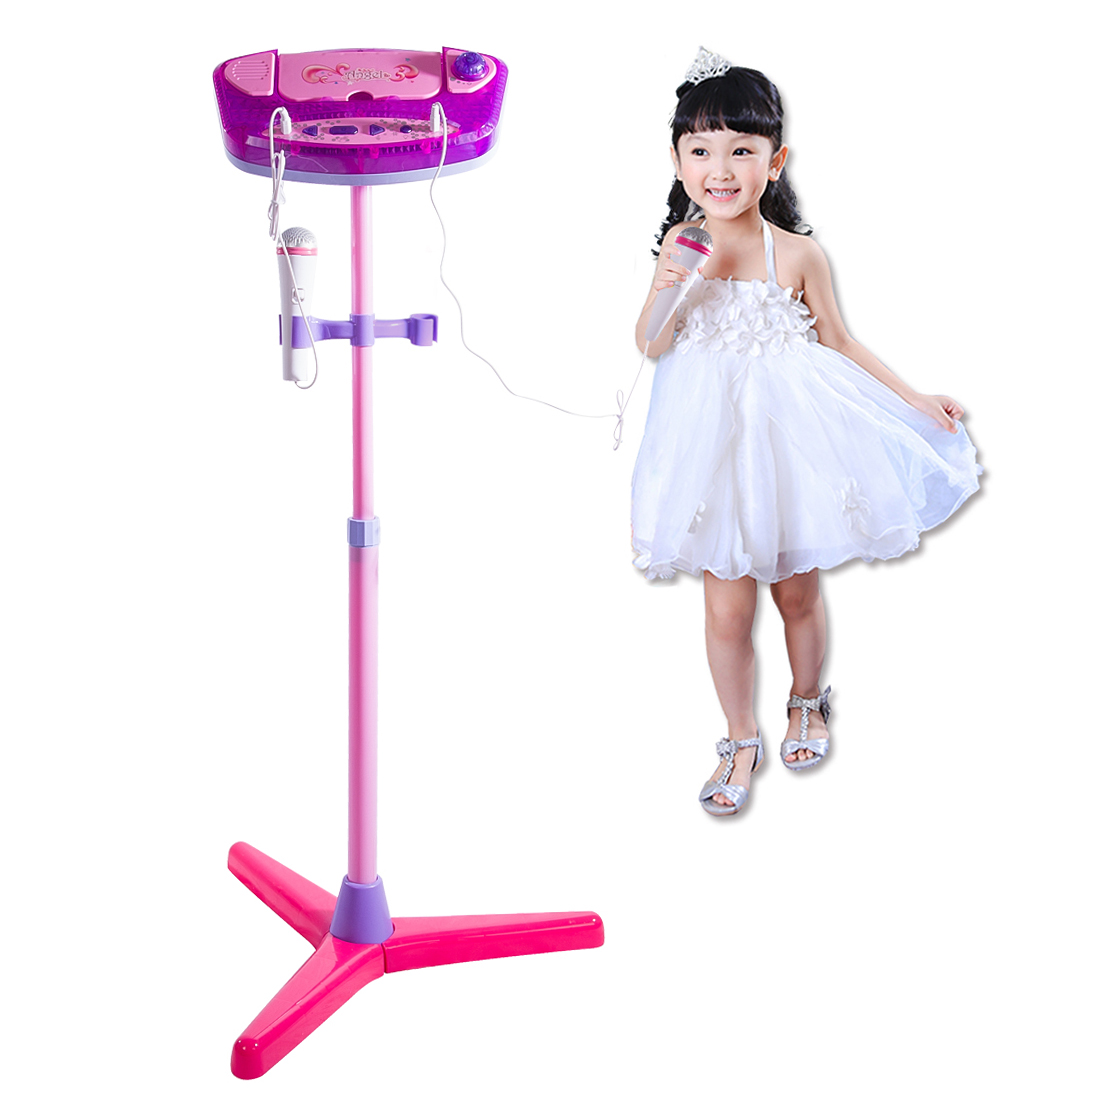 Karaoke Machine Stand Microphones Adjustable Music Toy with Bluetooth for kids - Upgrade Type Pink